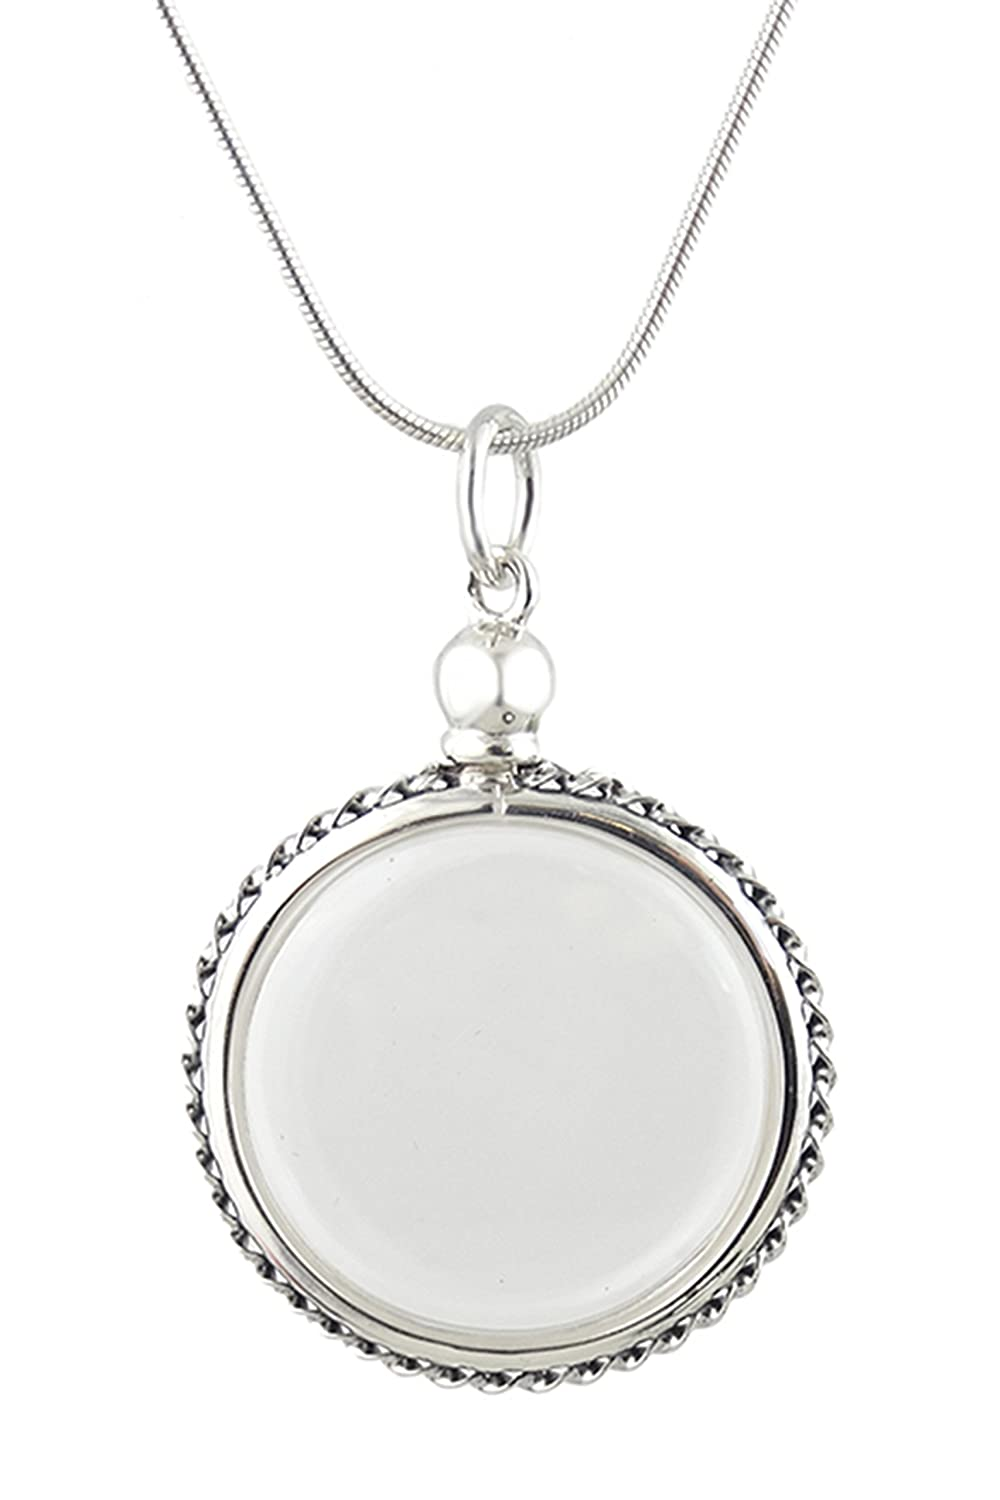 locket floating review lockets memory youtube clear charm watch necklace